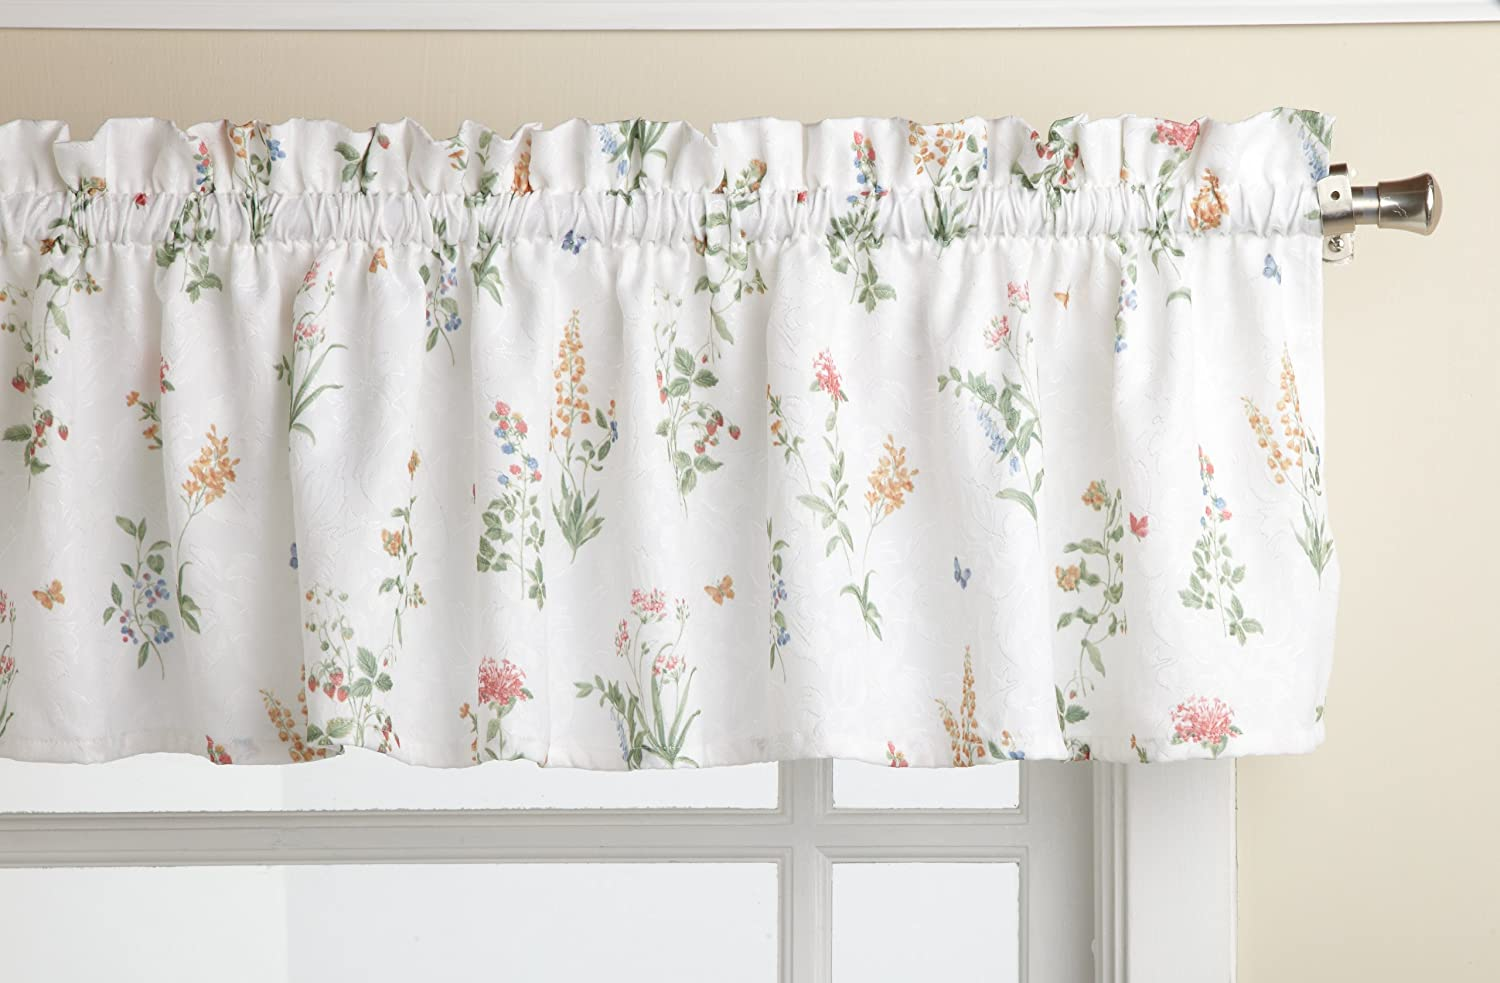 Lorraine Home Fashions English Garden 55-inch x 12-inch Tailored Valance, White/Multi